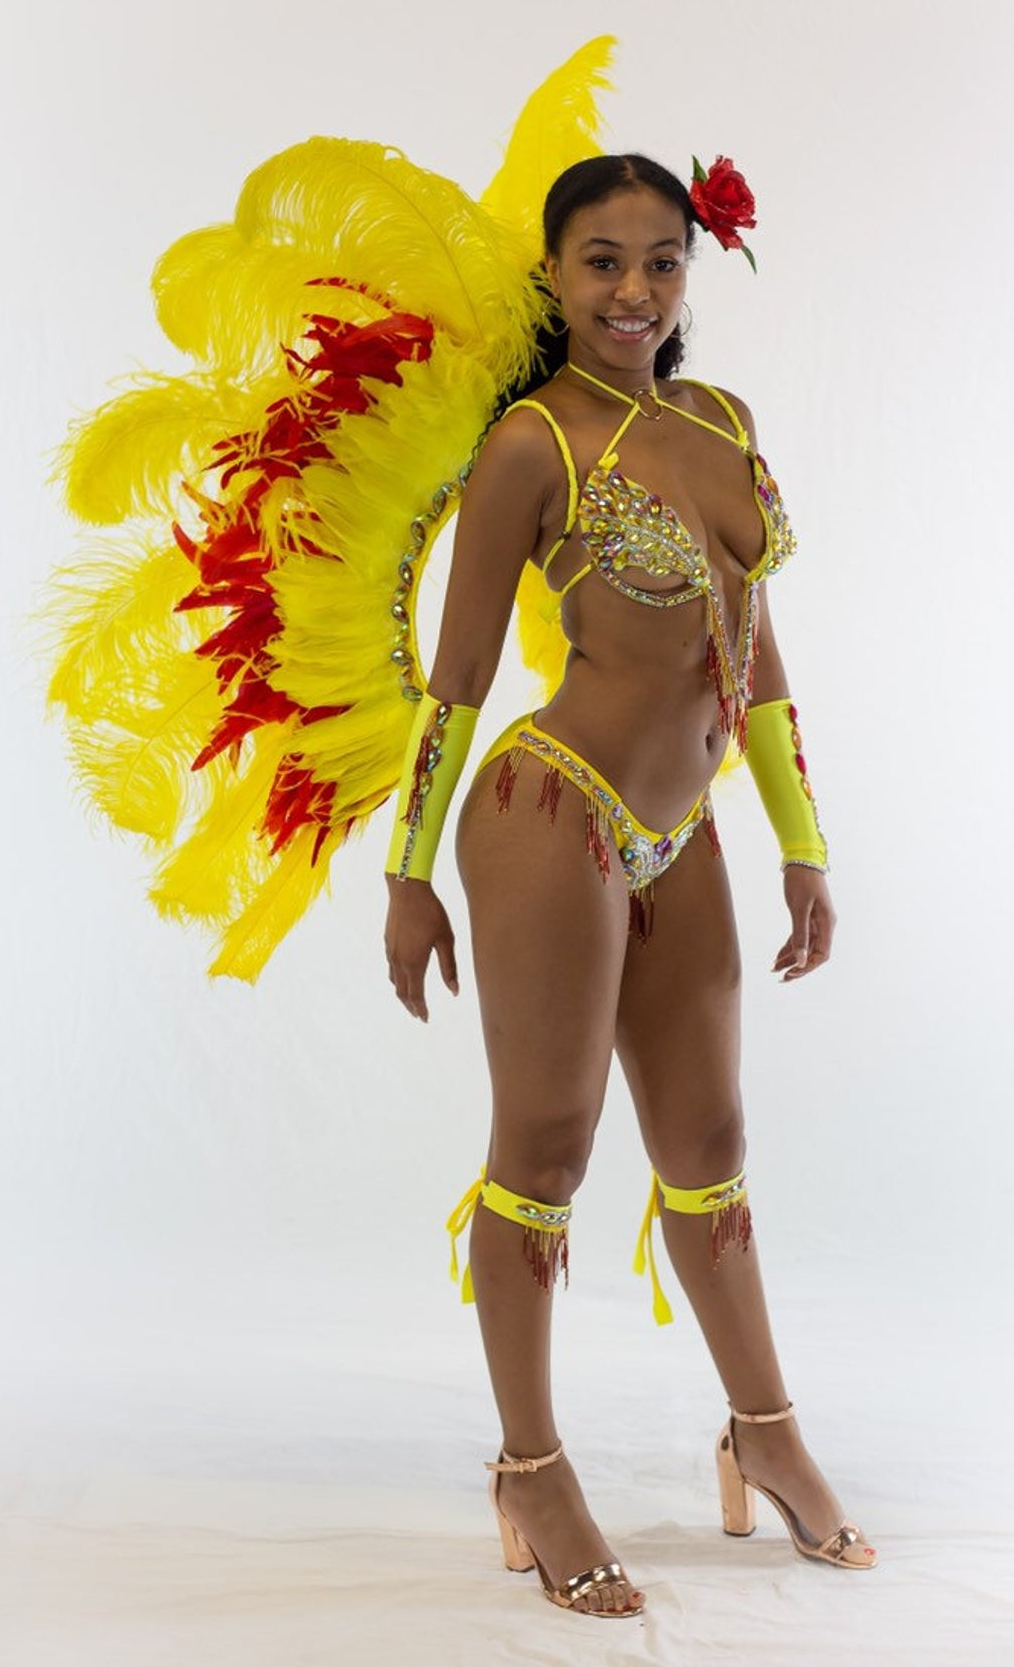 Bling carnival costumes Beautiful Hand Made Samba / Carnival Costume with Feathered Backpack, Samba Sleeves and Embellished Bra and Pantie